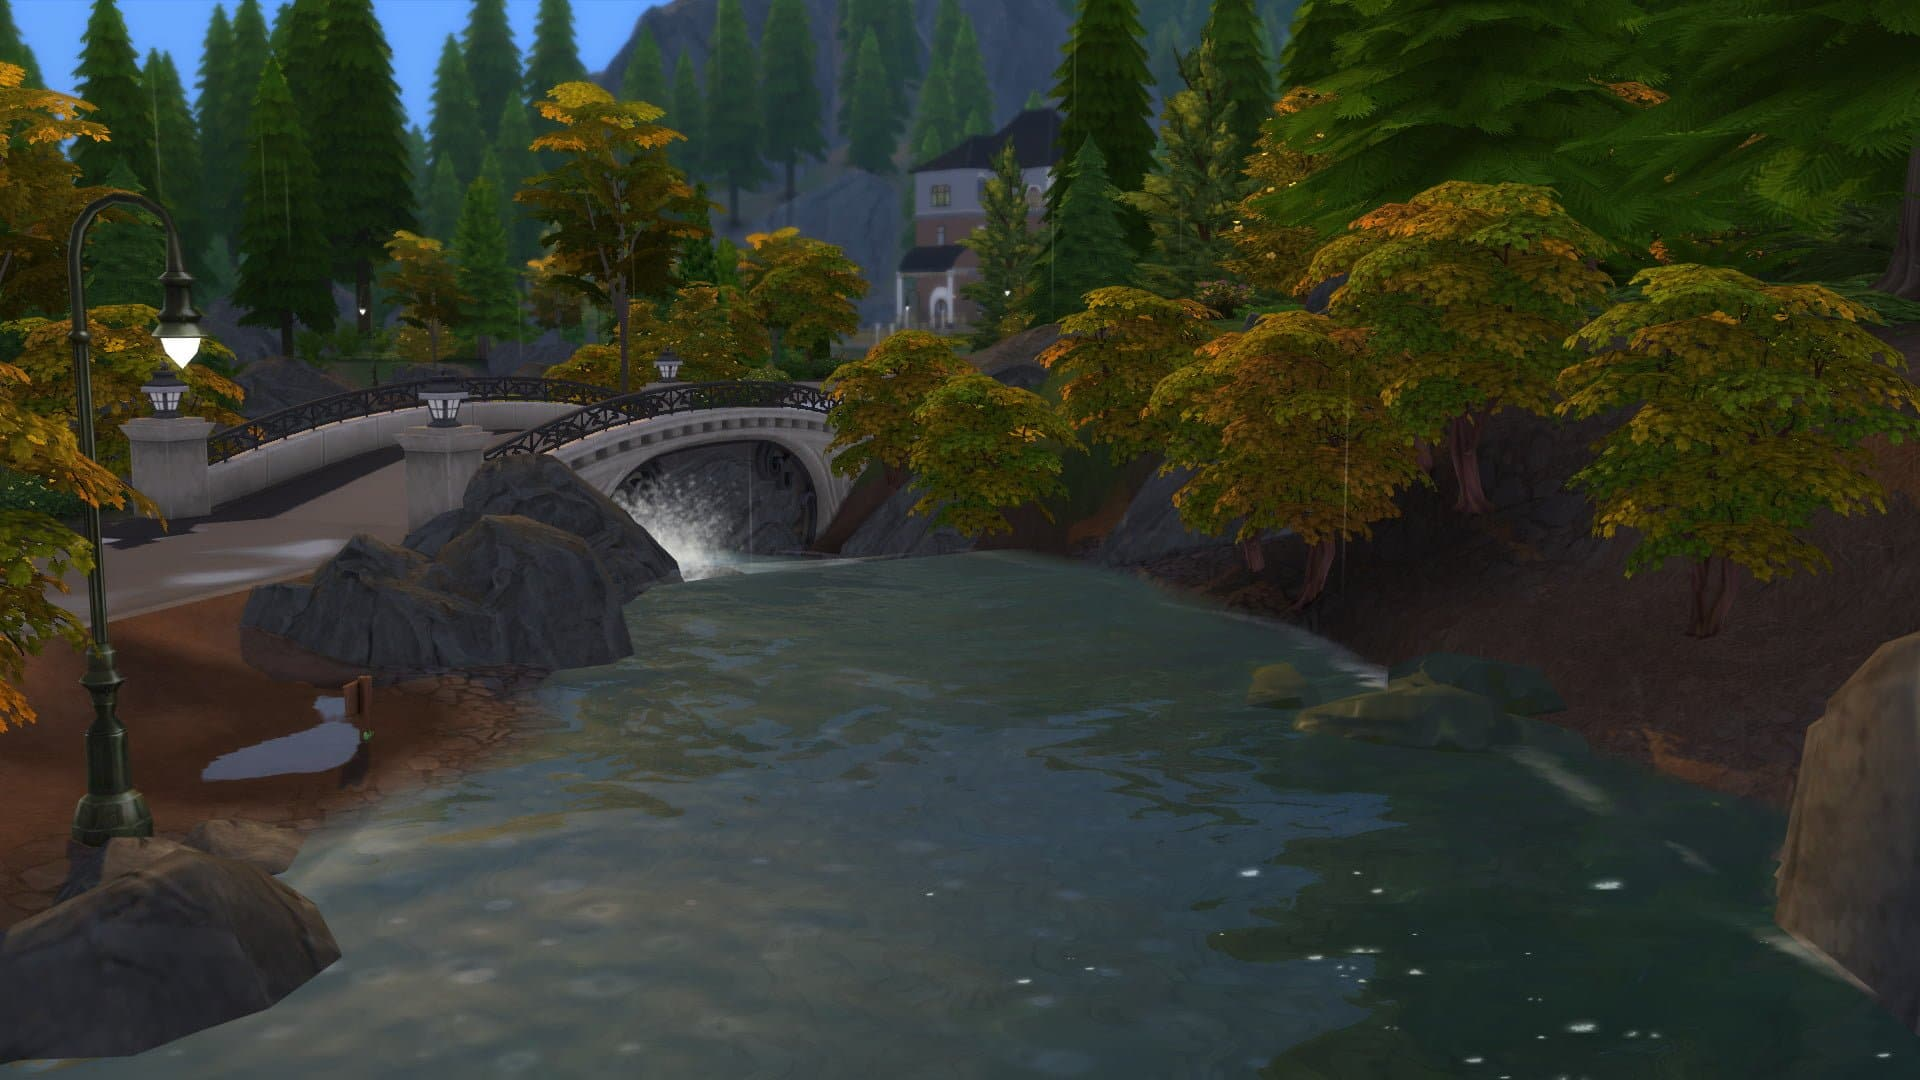 Glimmerbrook automne Sims 4